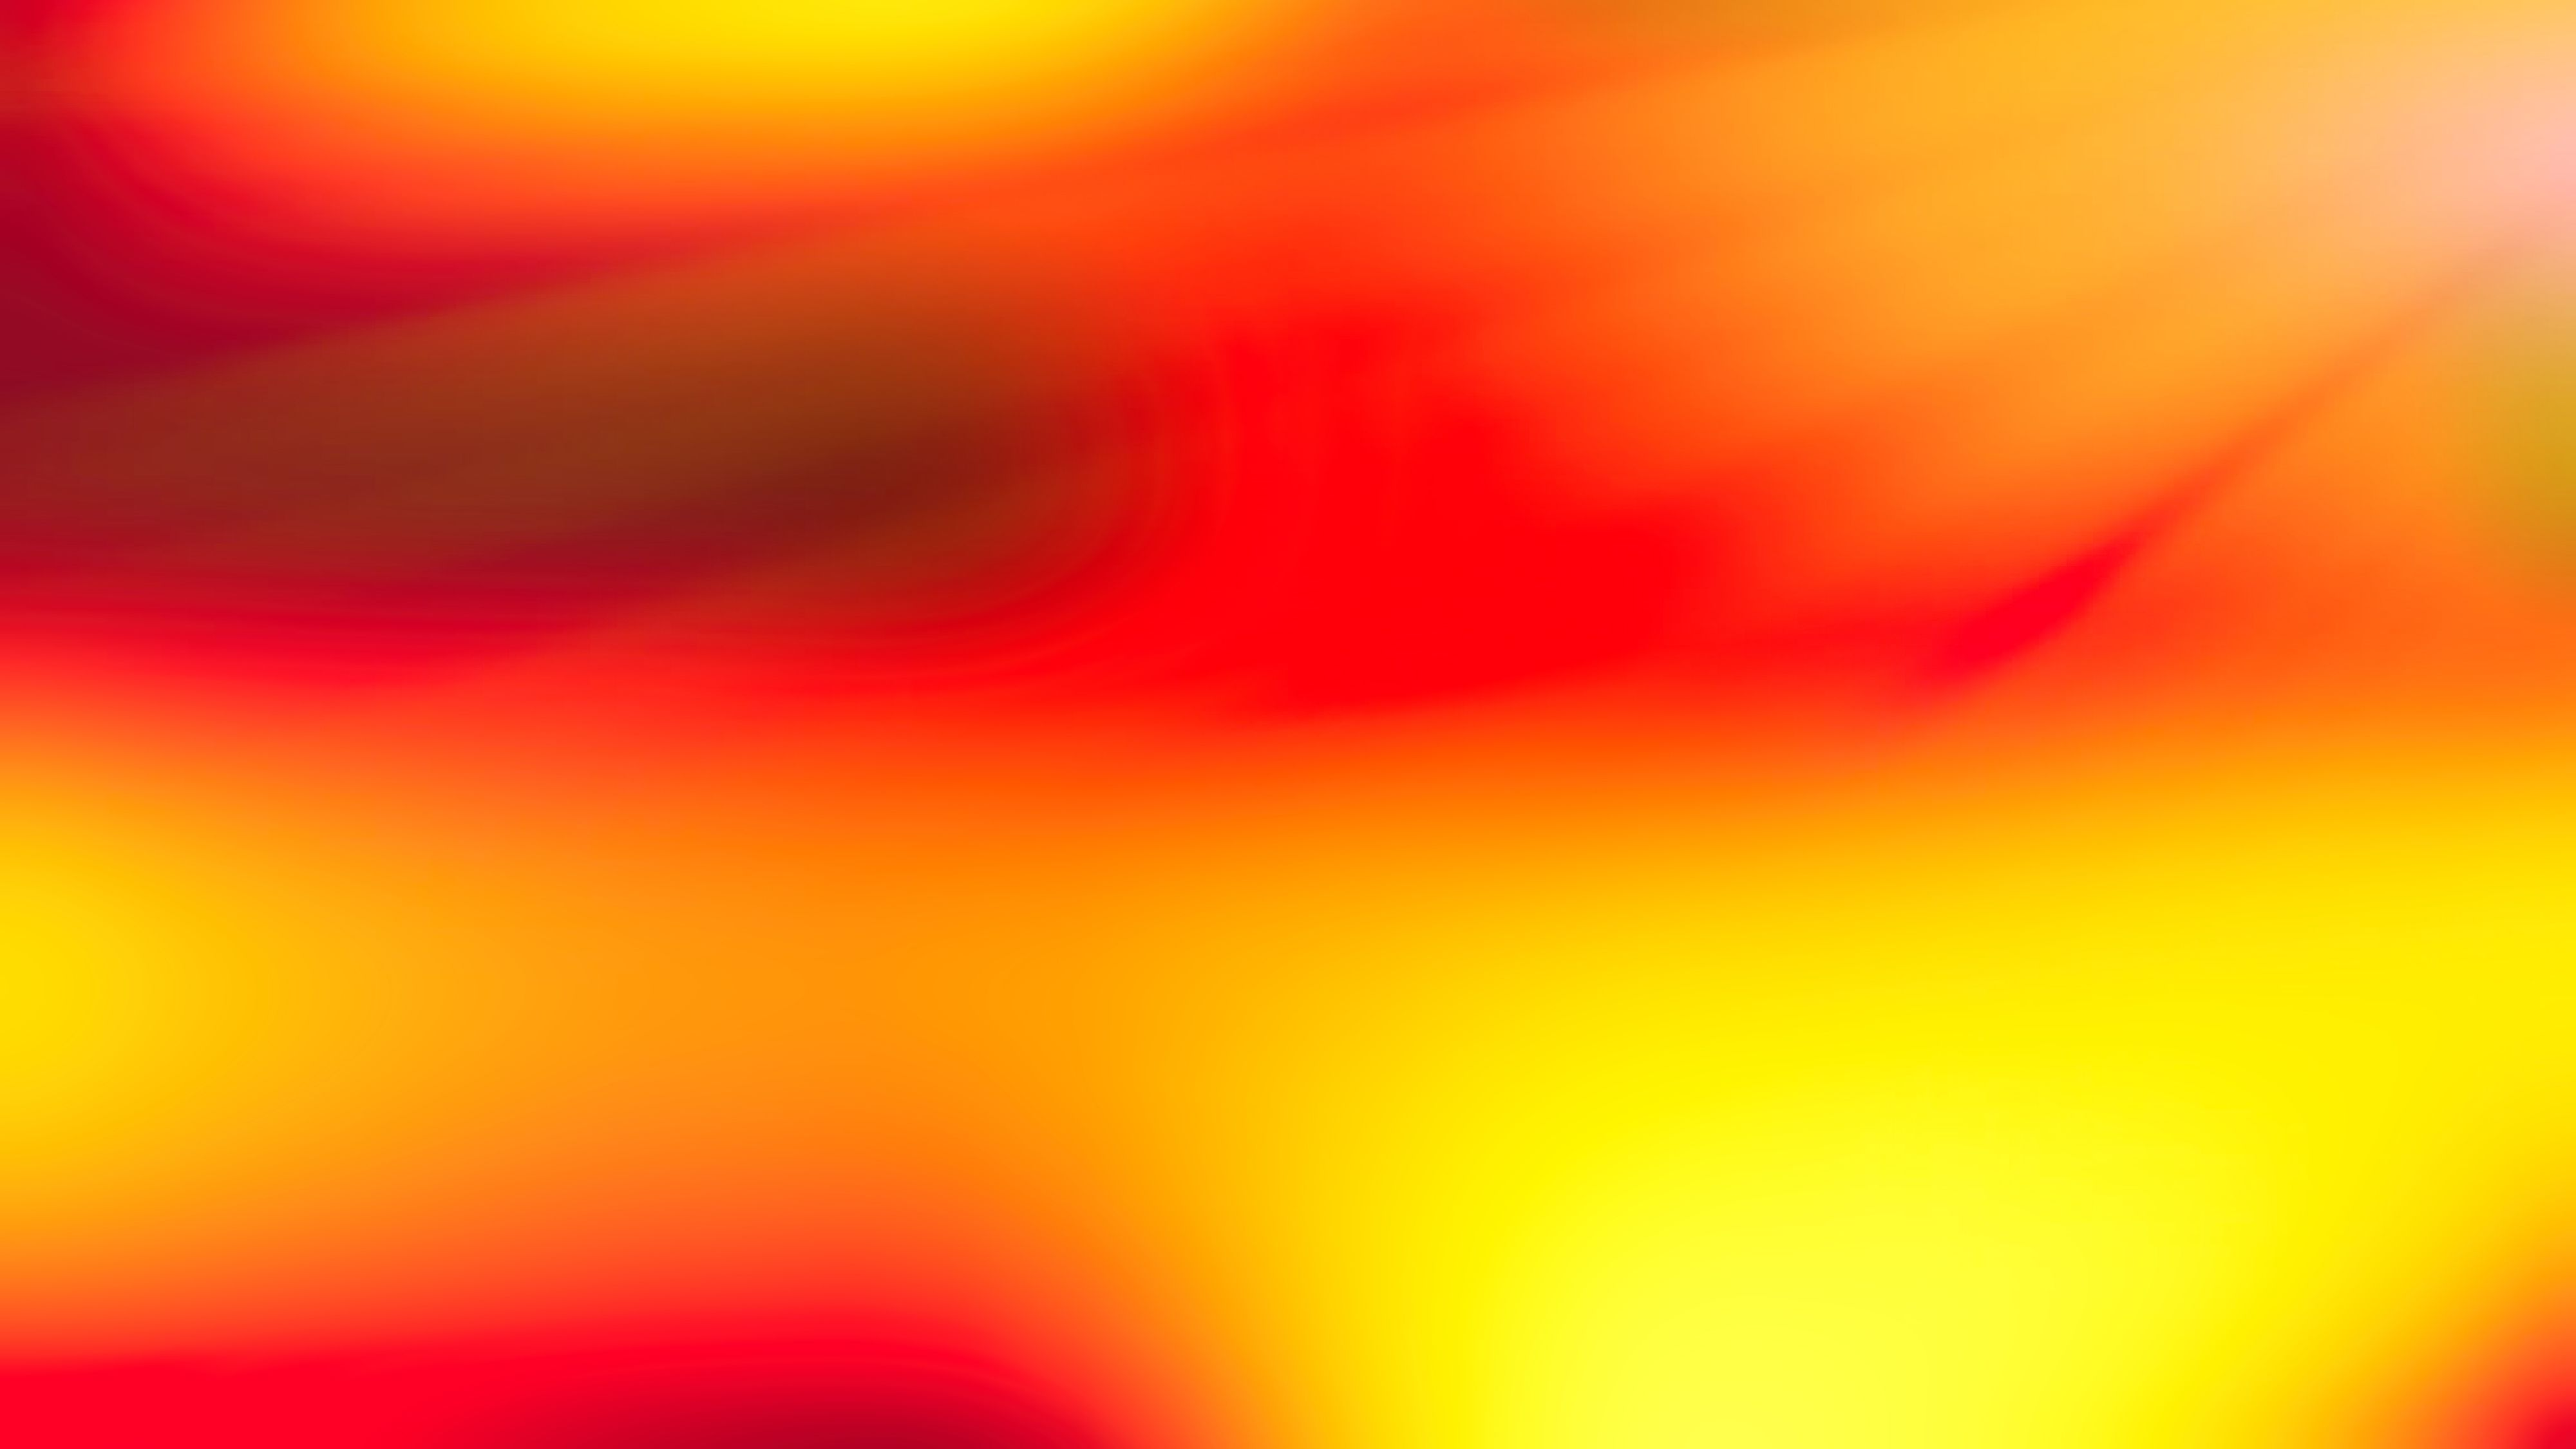 Orange Red Yellow Free Background Image Design Graphicdesign Creative Wallpaper Backgr Free Background Images Background Images Red Background Images